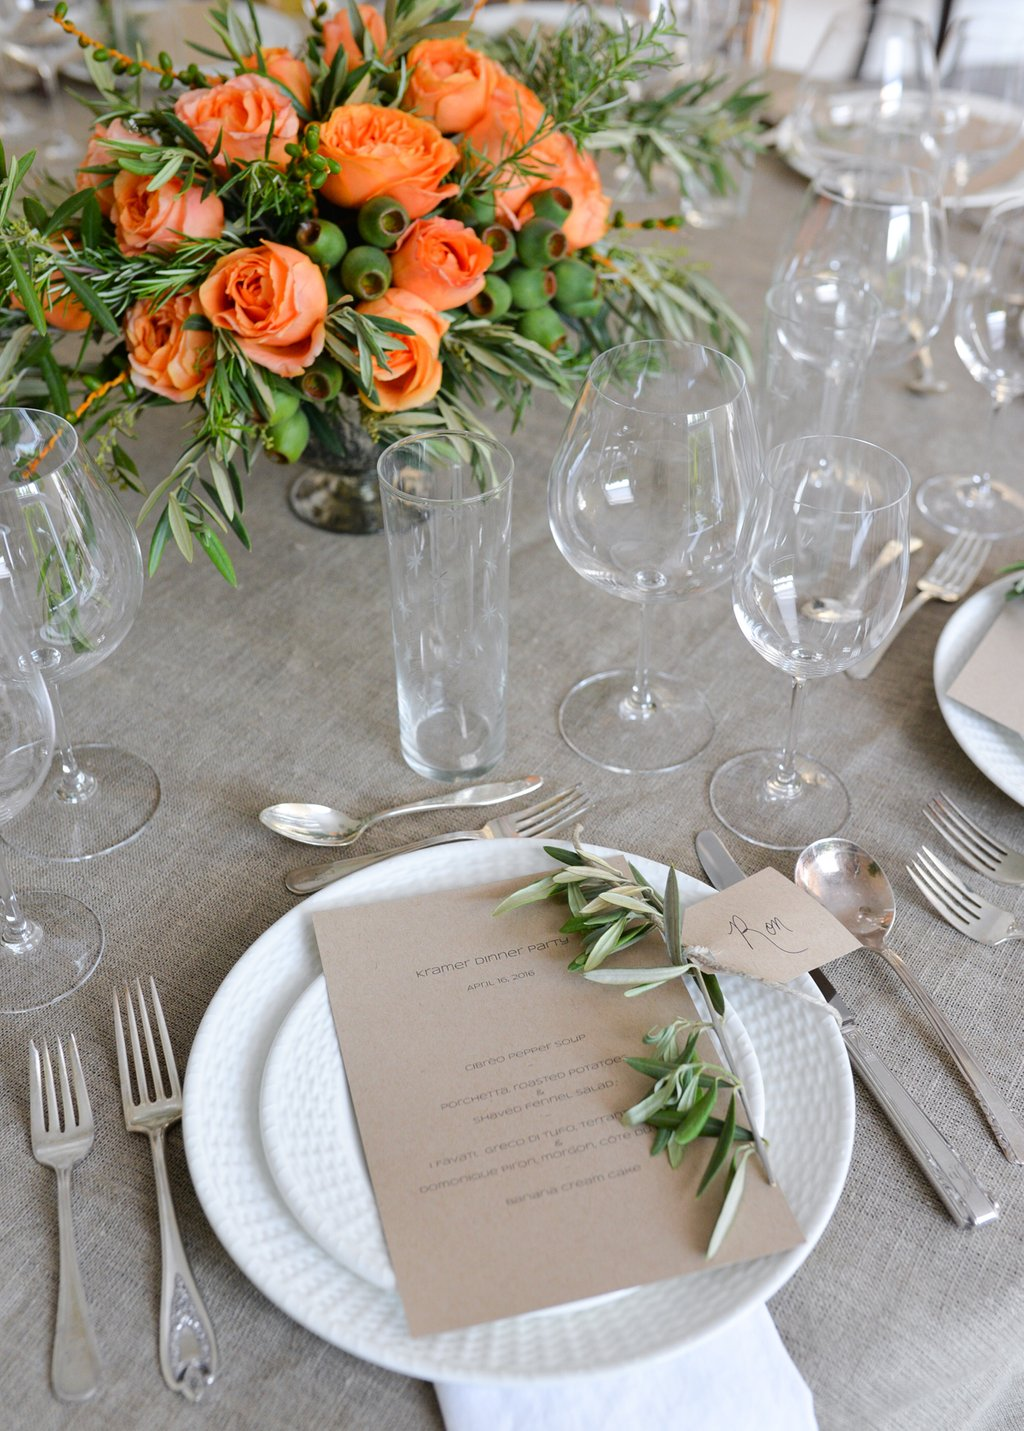 Italian Dinner Party Stacie Flinner Making Dining Room Table Centerpieces